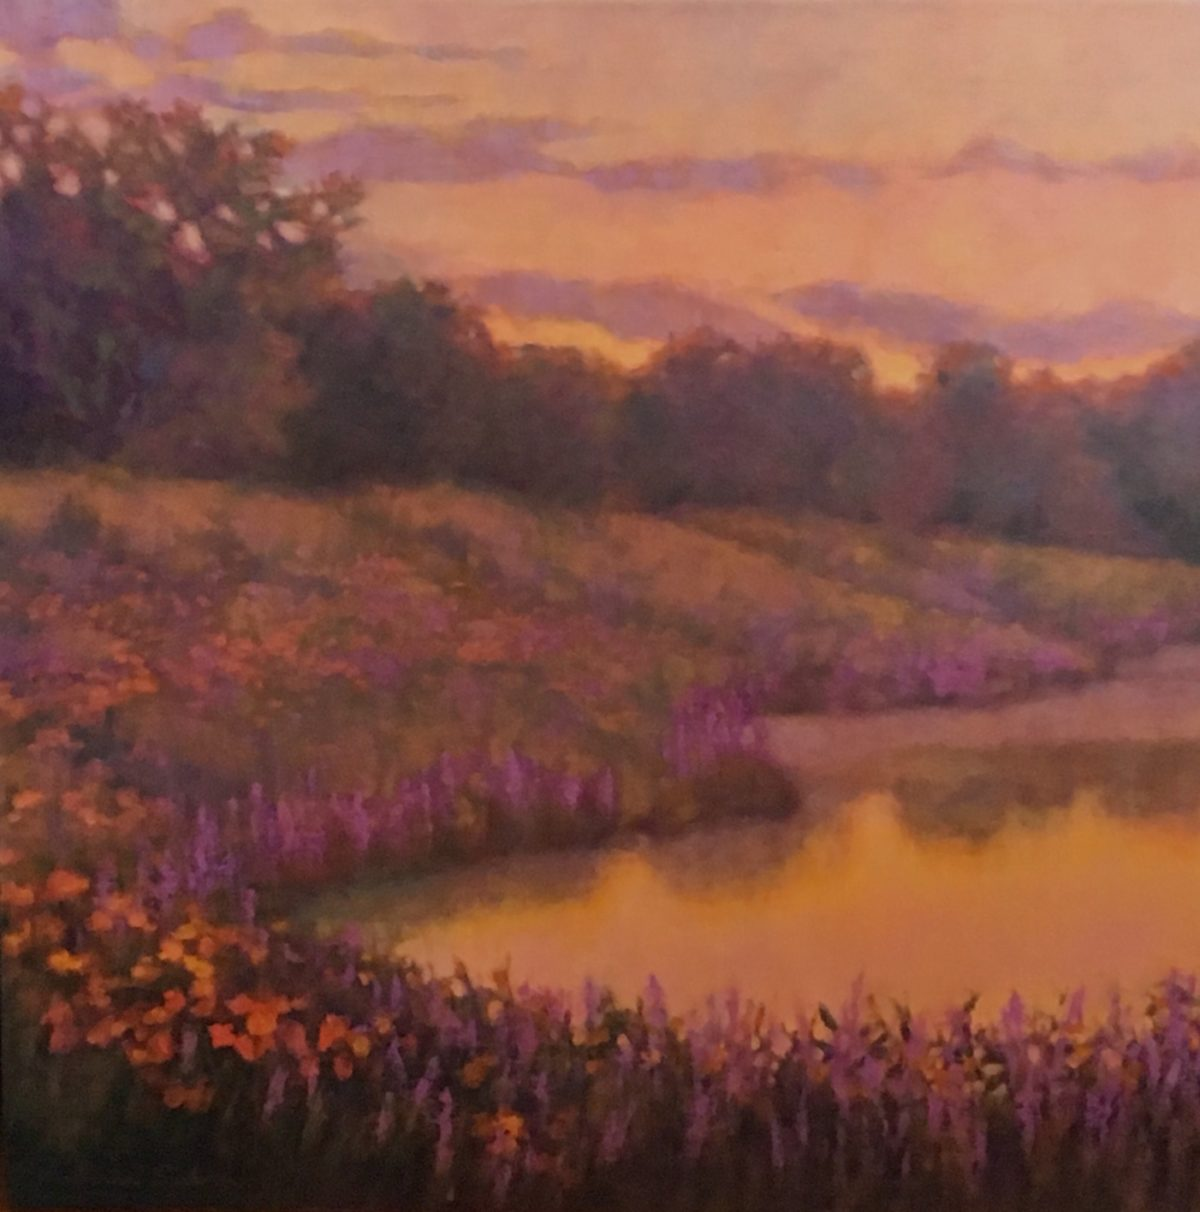 Evening Pond with Wildflowers